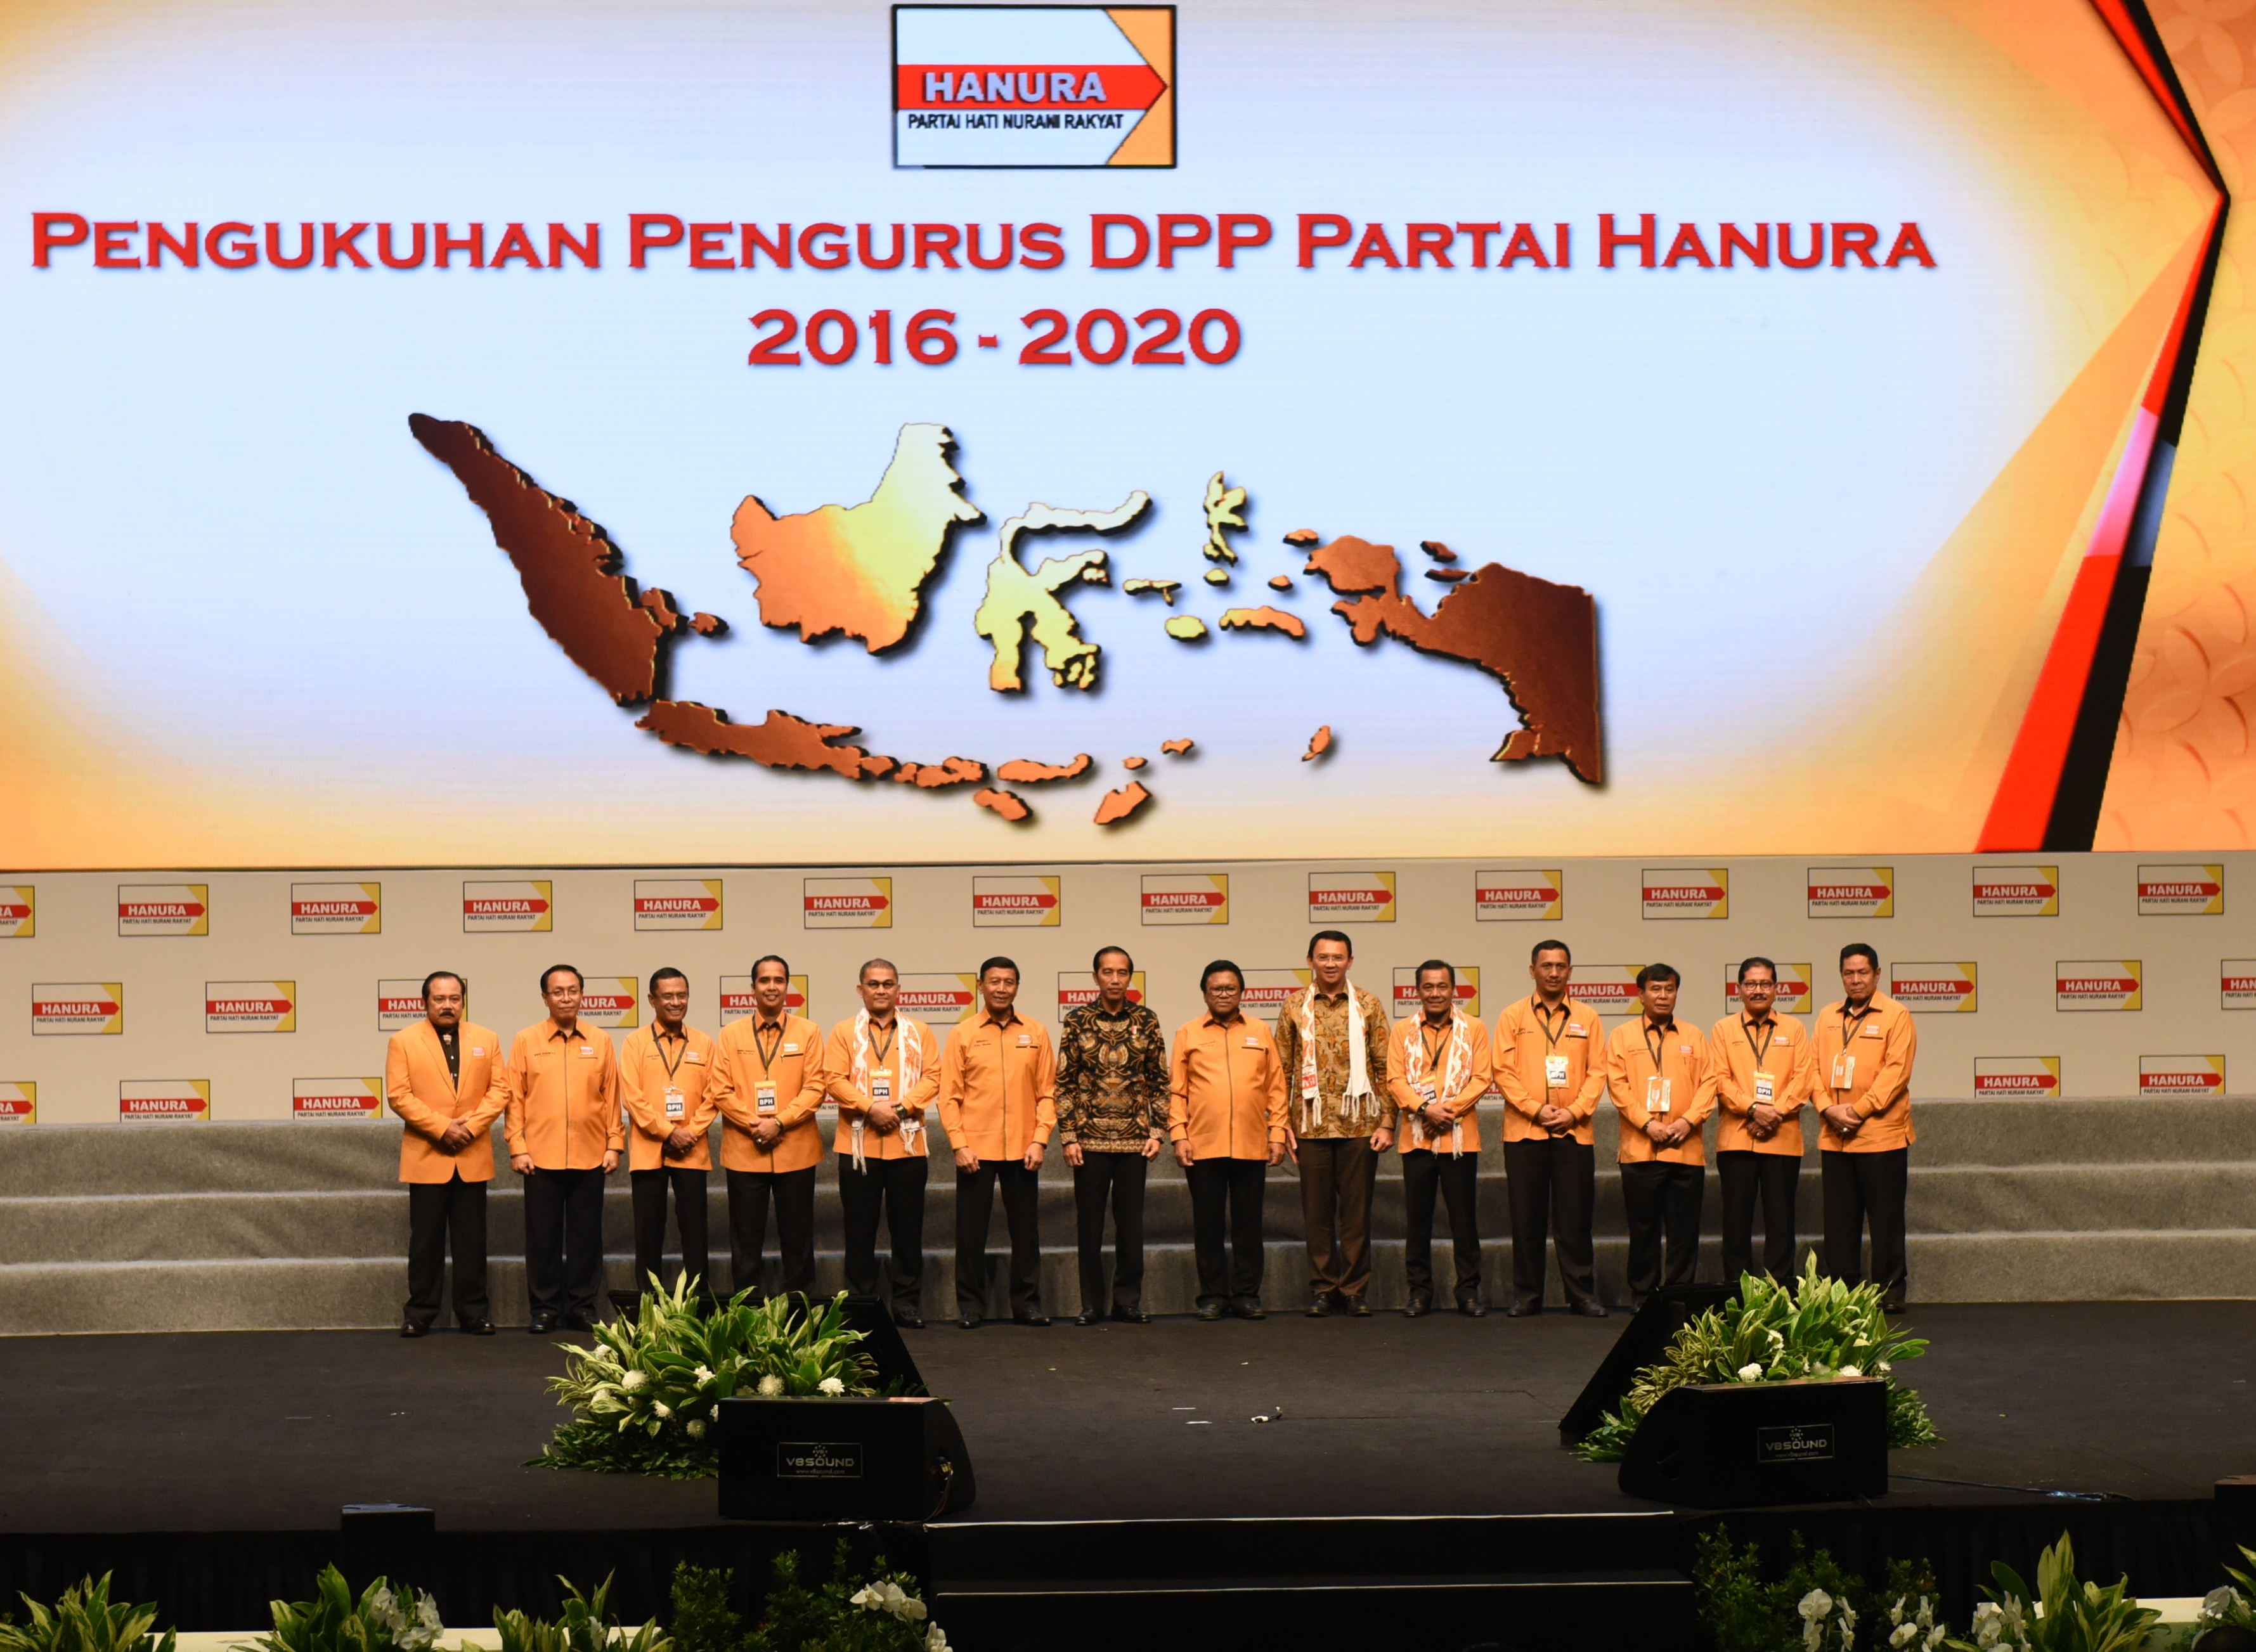 President Jokowi and Jakarta Governor Basuki Tjahaja Purnama take a group photo with the officials of Central Executive Board (DPP) of Hanura Party during the Inauguration of DPP Hanura Party on Wednesday (22/2), at the Sentul International Convention Center (SICC), Bogor, West Java